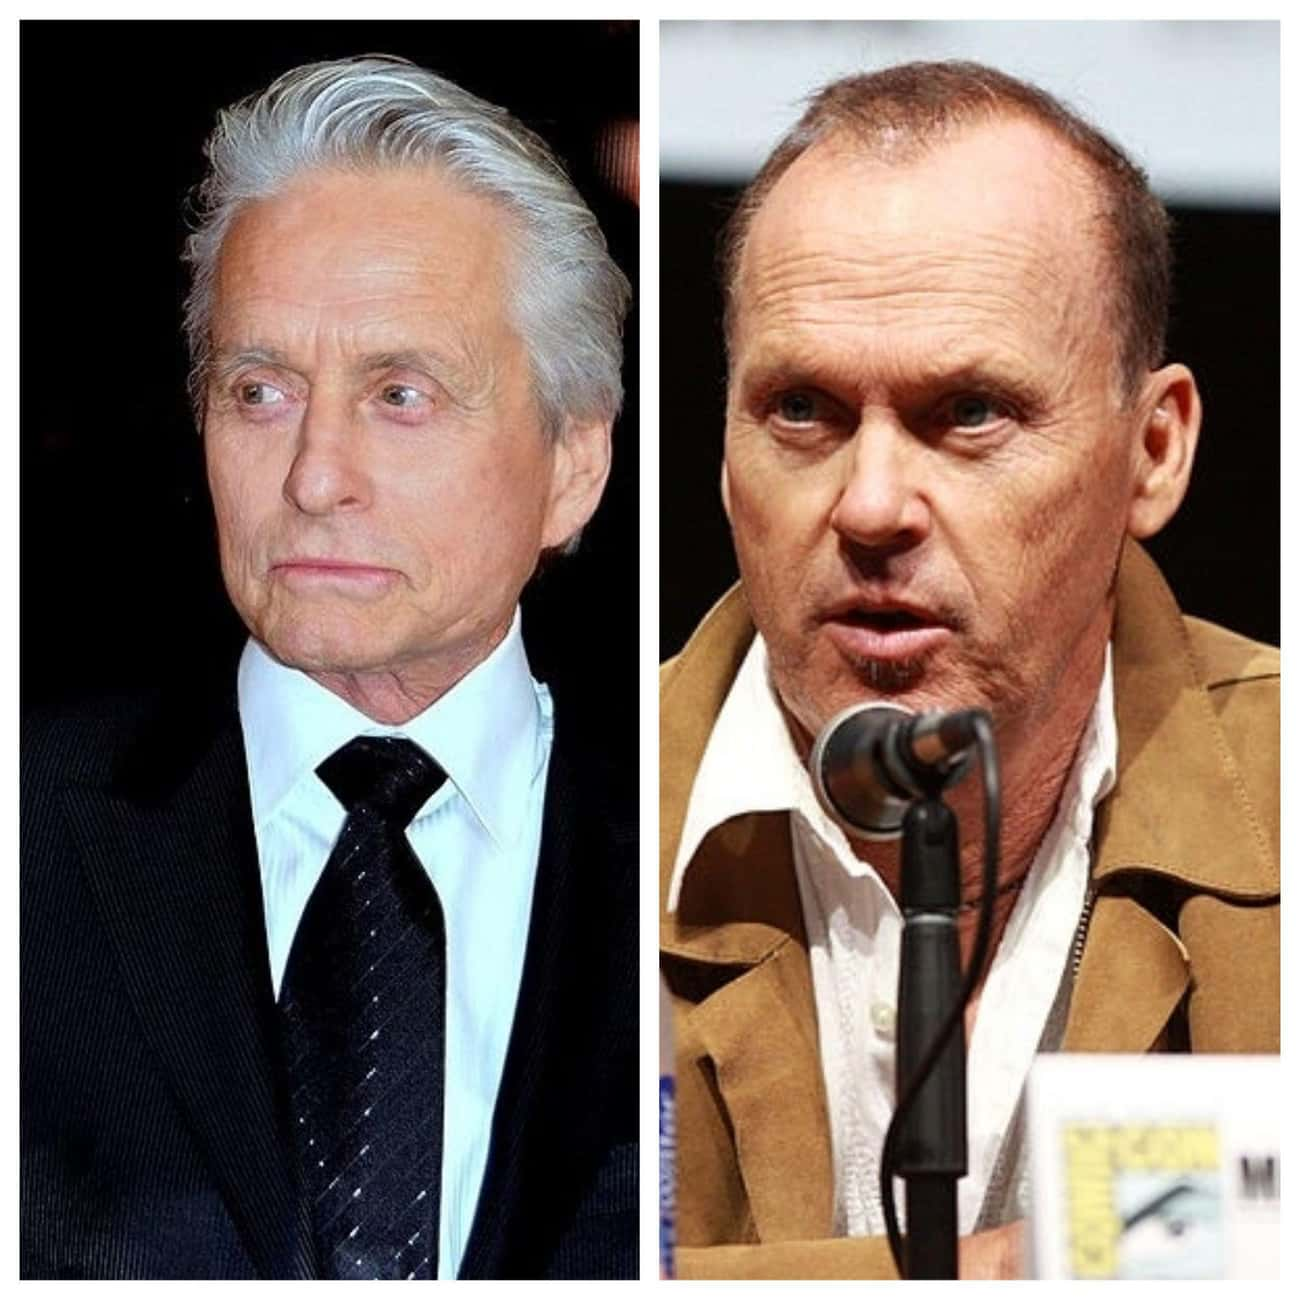 Michael Douglas & Michael Keat is listed (or ranked) 1 on the list Famous People with the Same Real Name